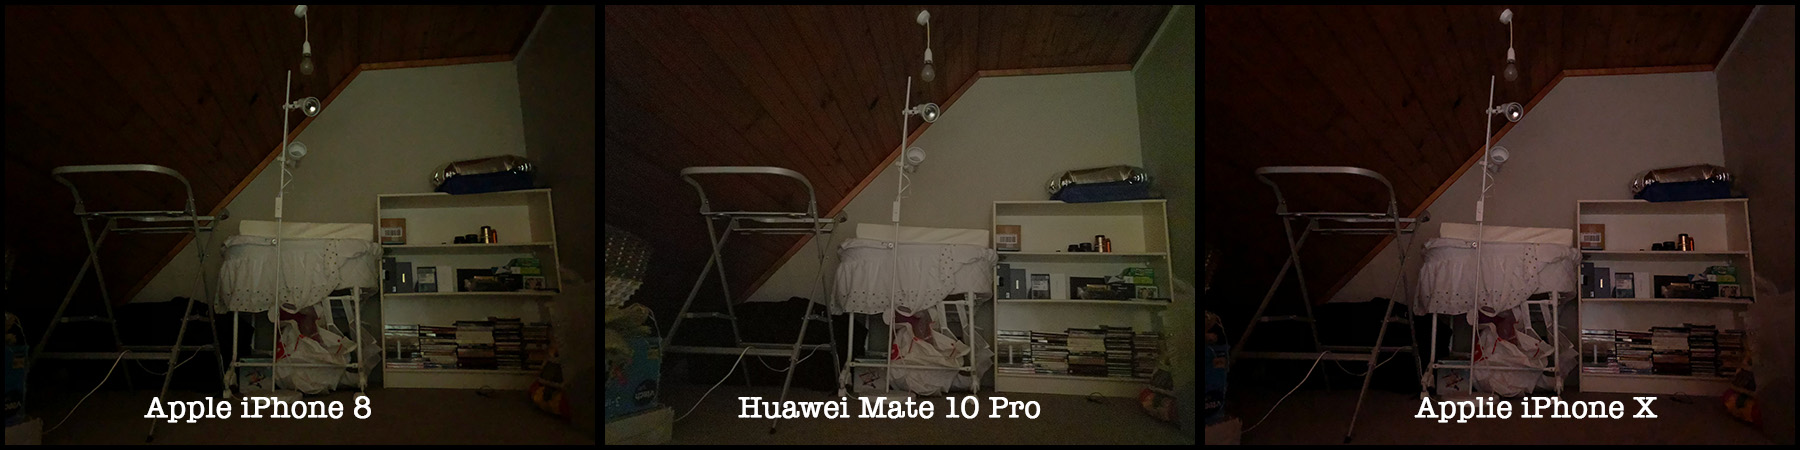 Huawei Mate 10 Pro Camera Review – Review By Richard